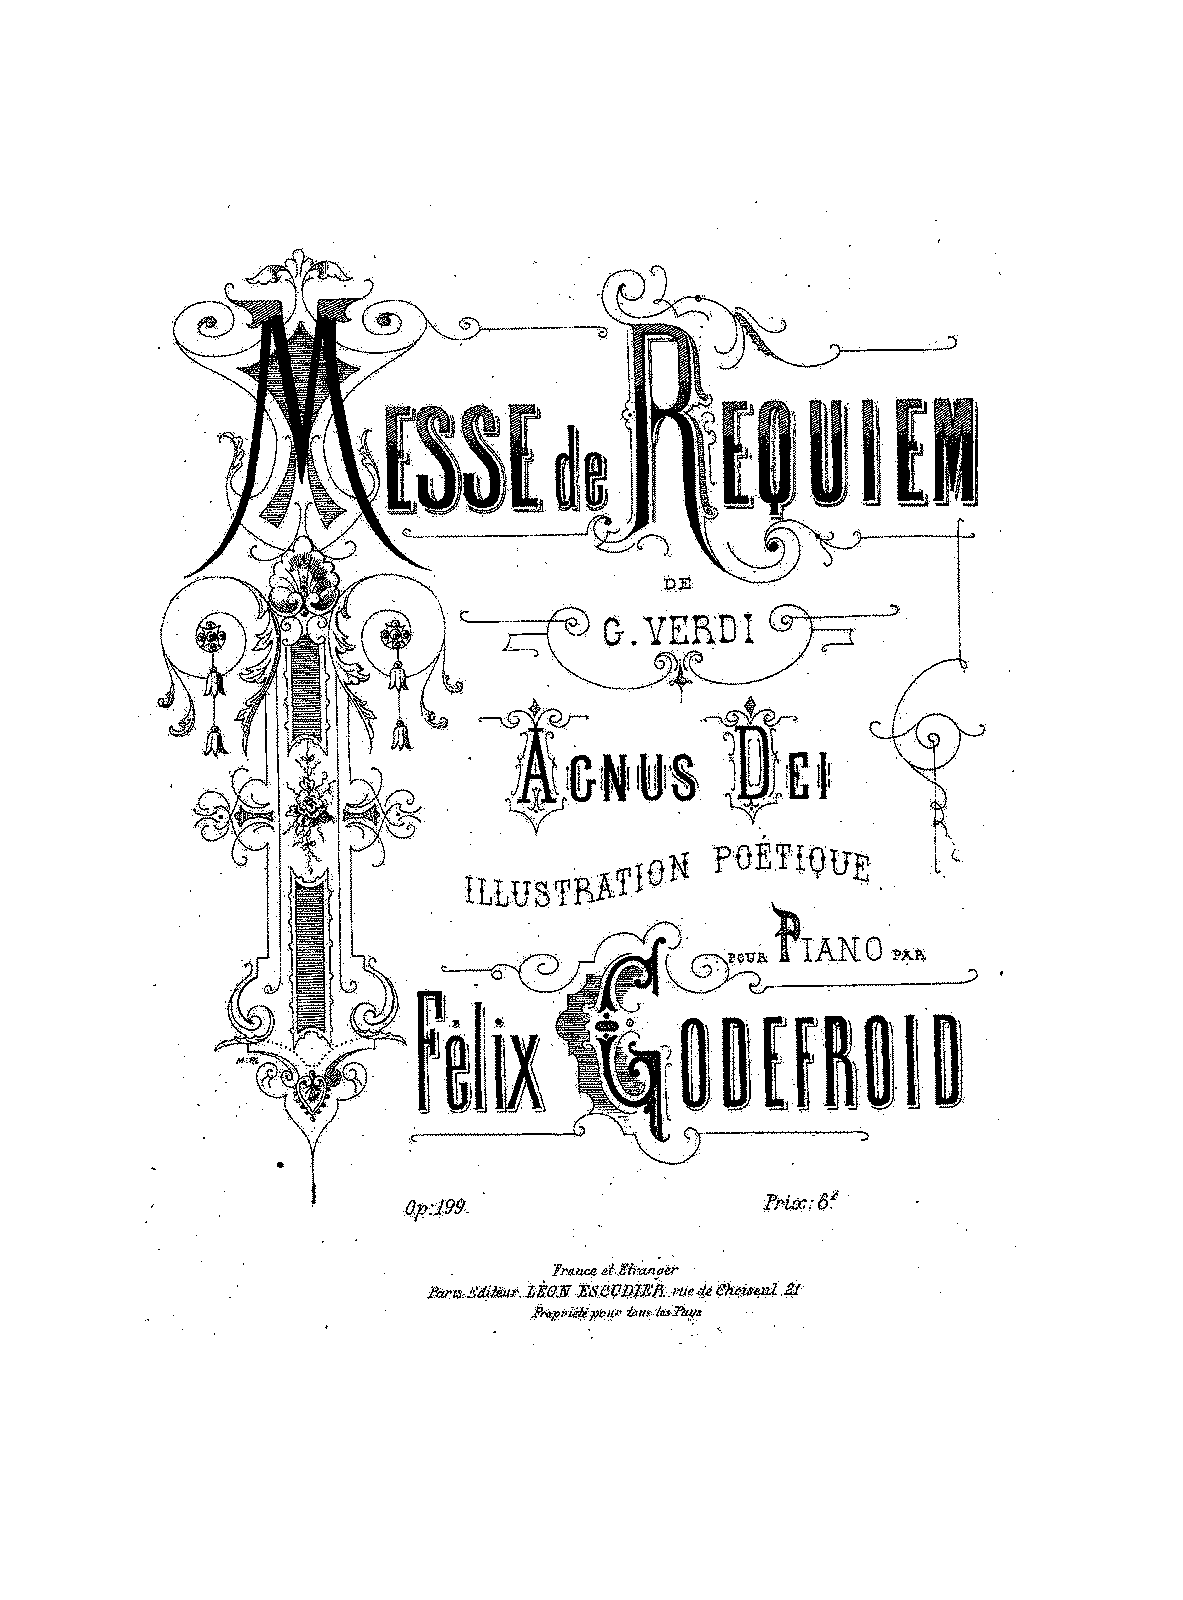 PMLP01812-Godefroid - Illustration poetique sur Requiem de Verdi.pdf